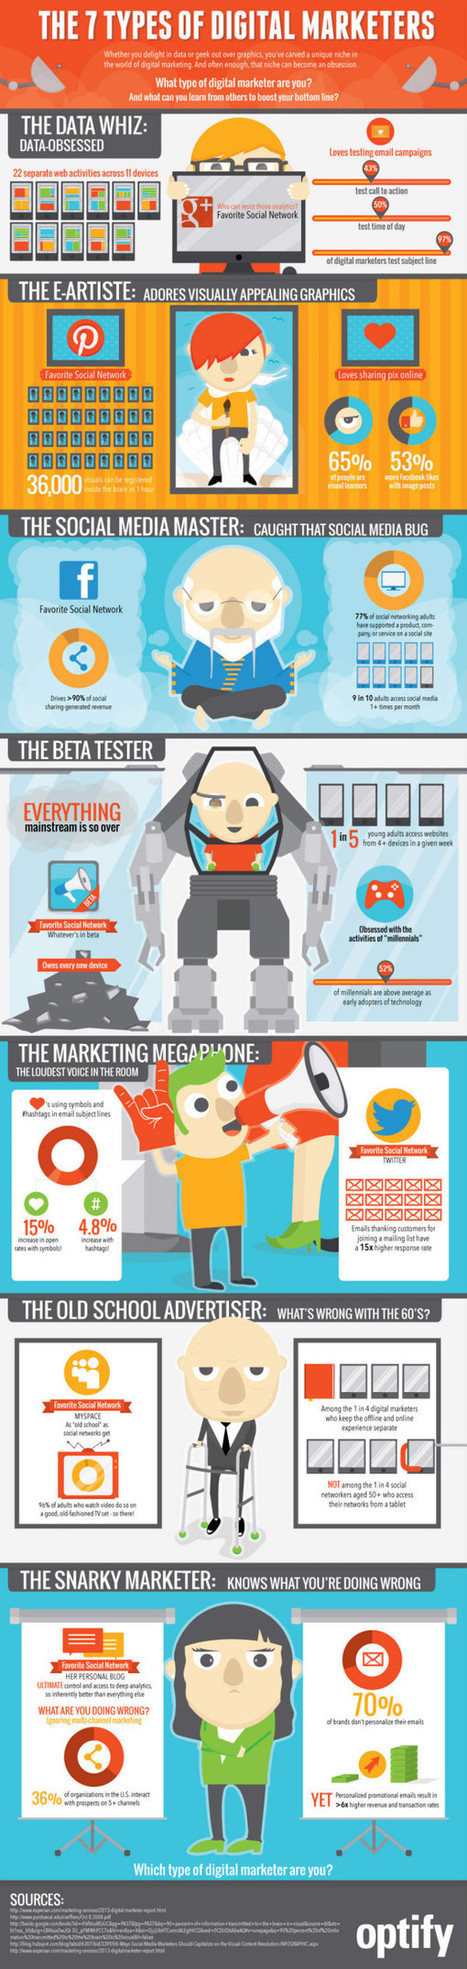 The 7 types of digital marketers [infographic] | Digital Marketing Land | Scoop.it